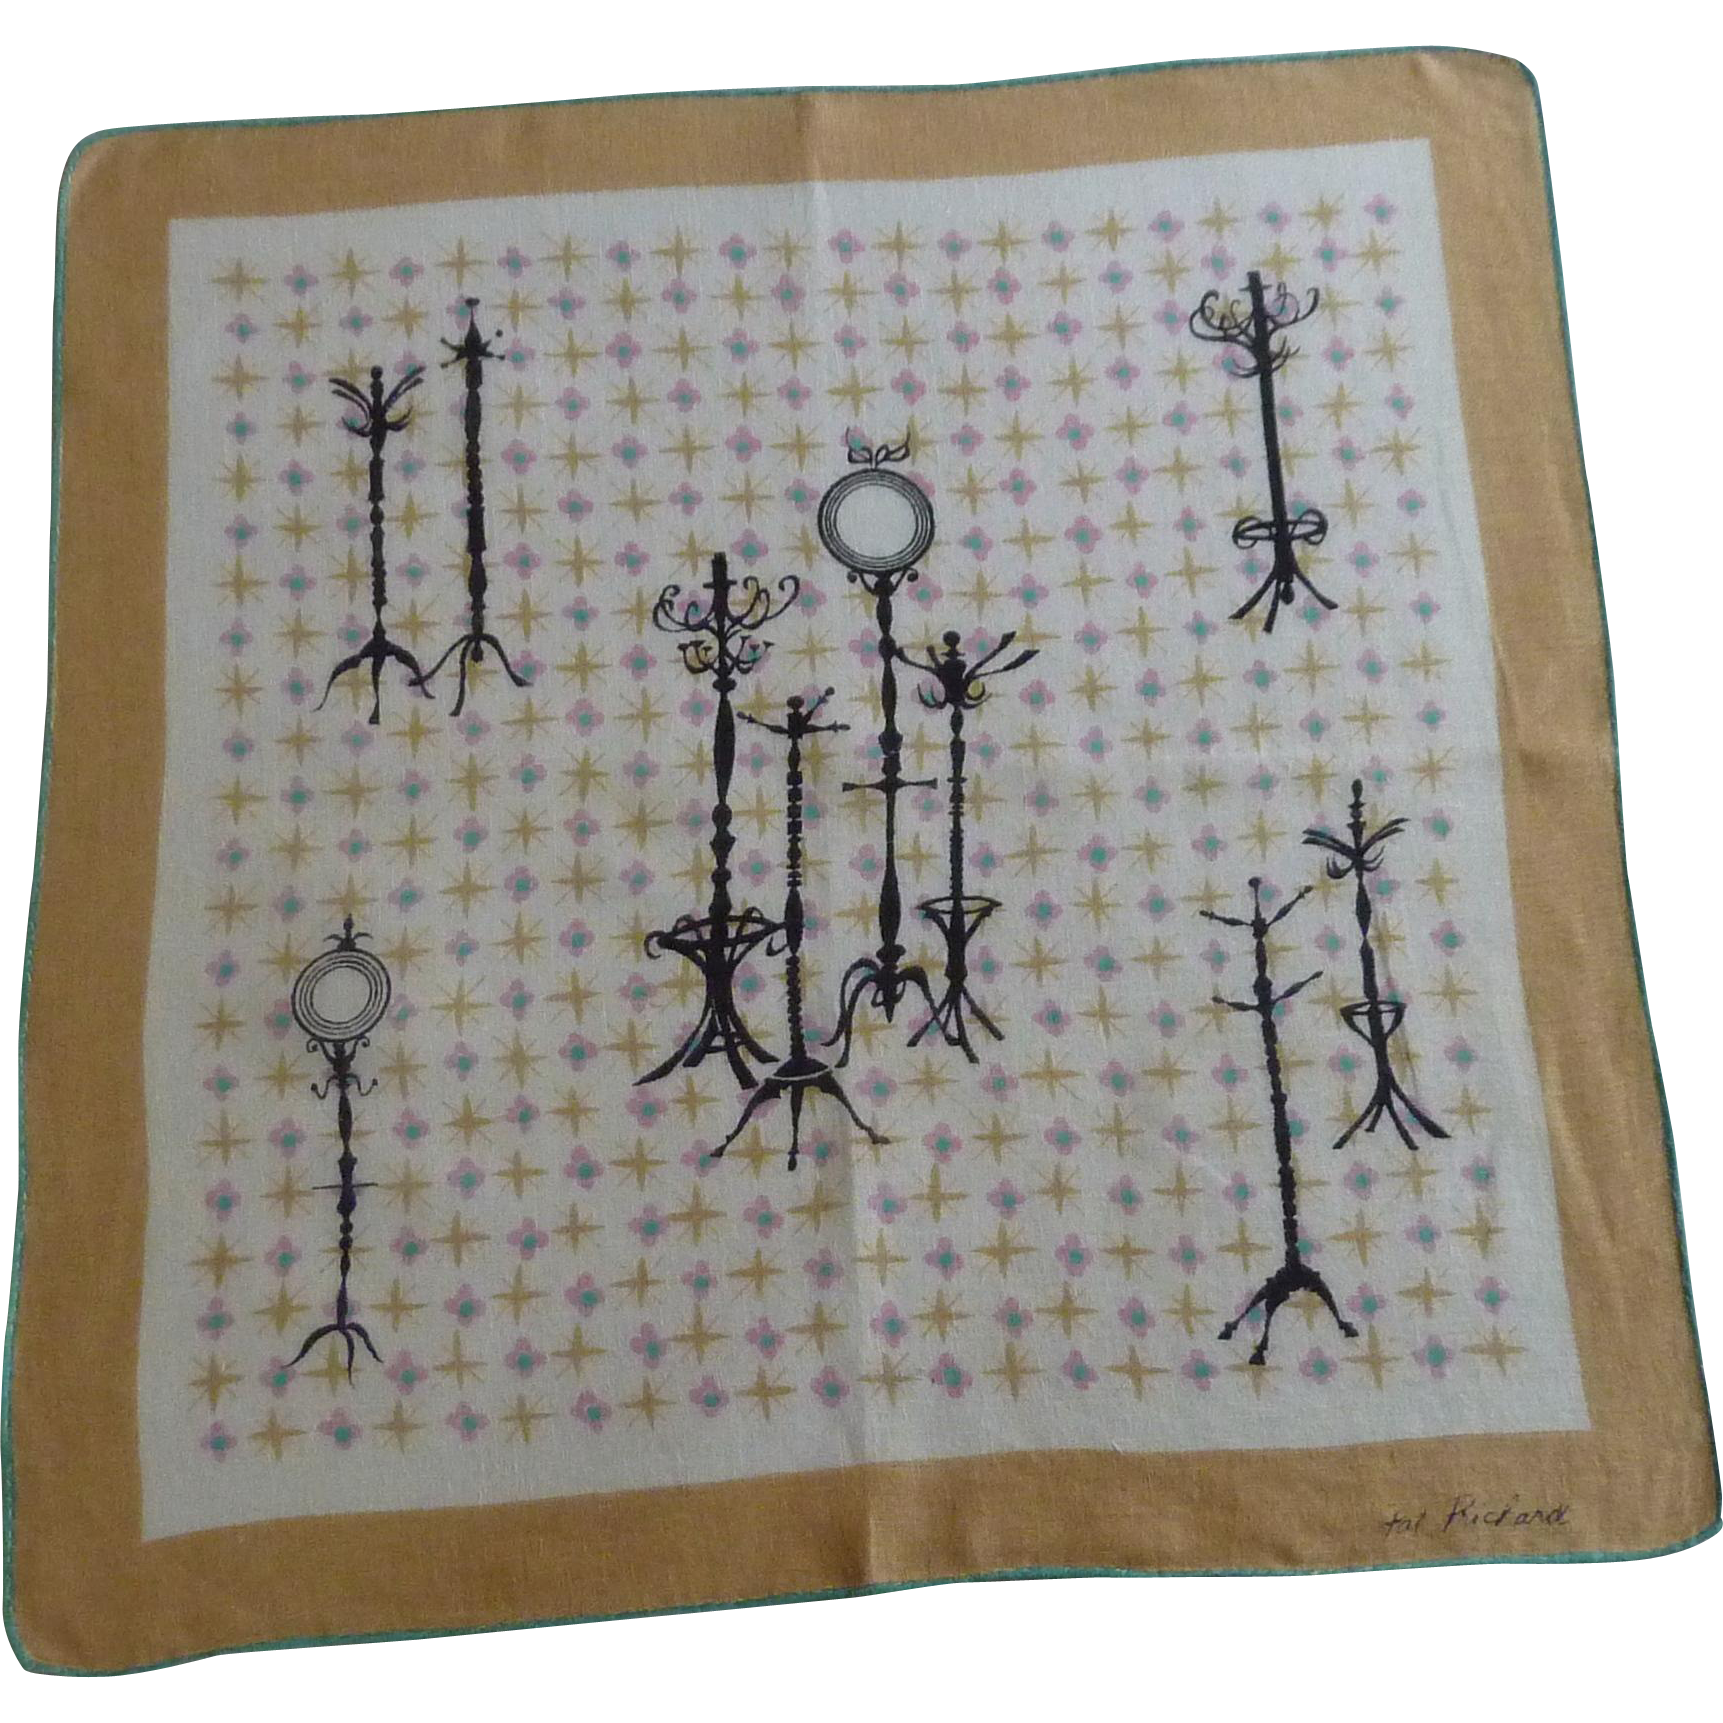 Pat Pritchard Signed Clothes Rack Handkerchief Hankie